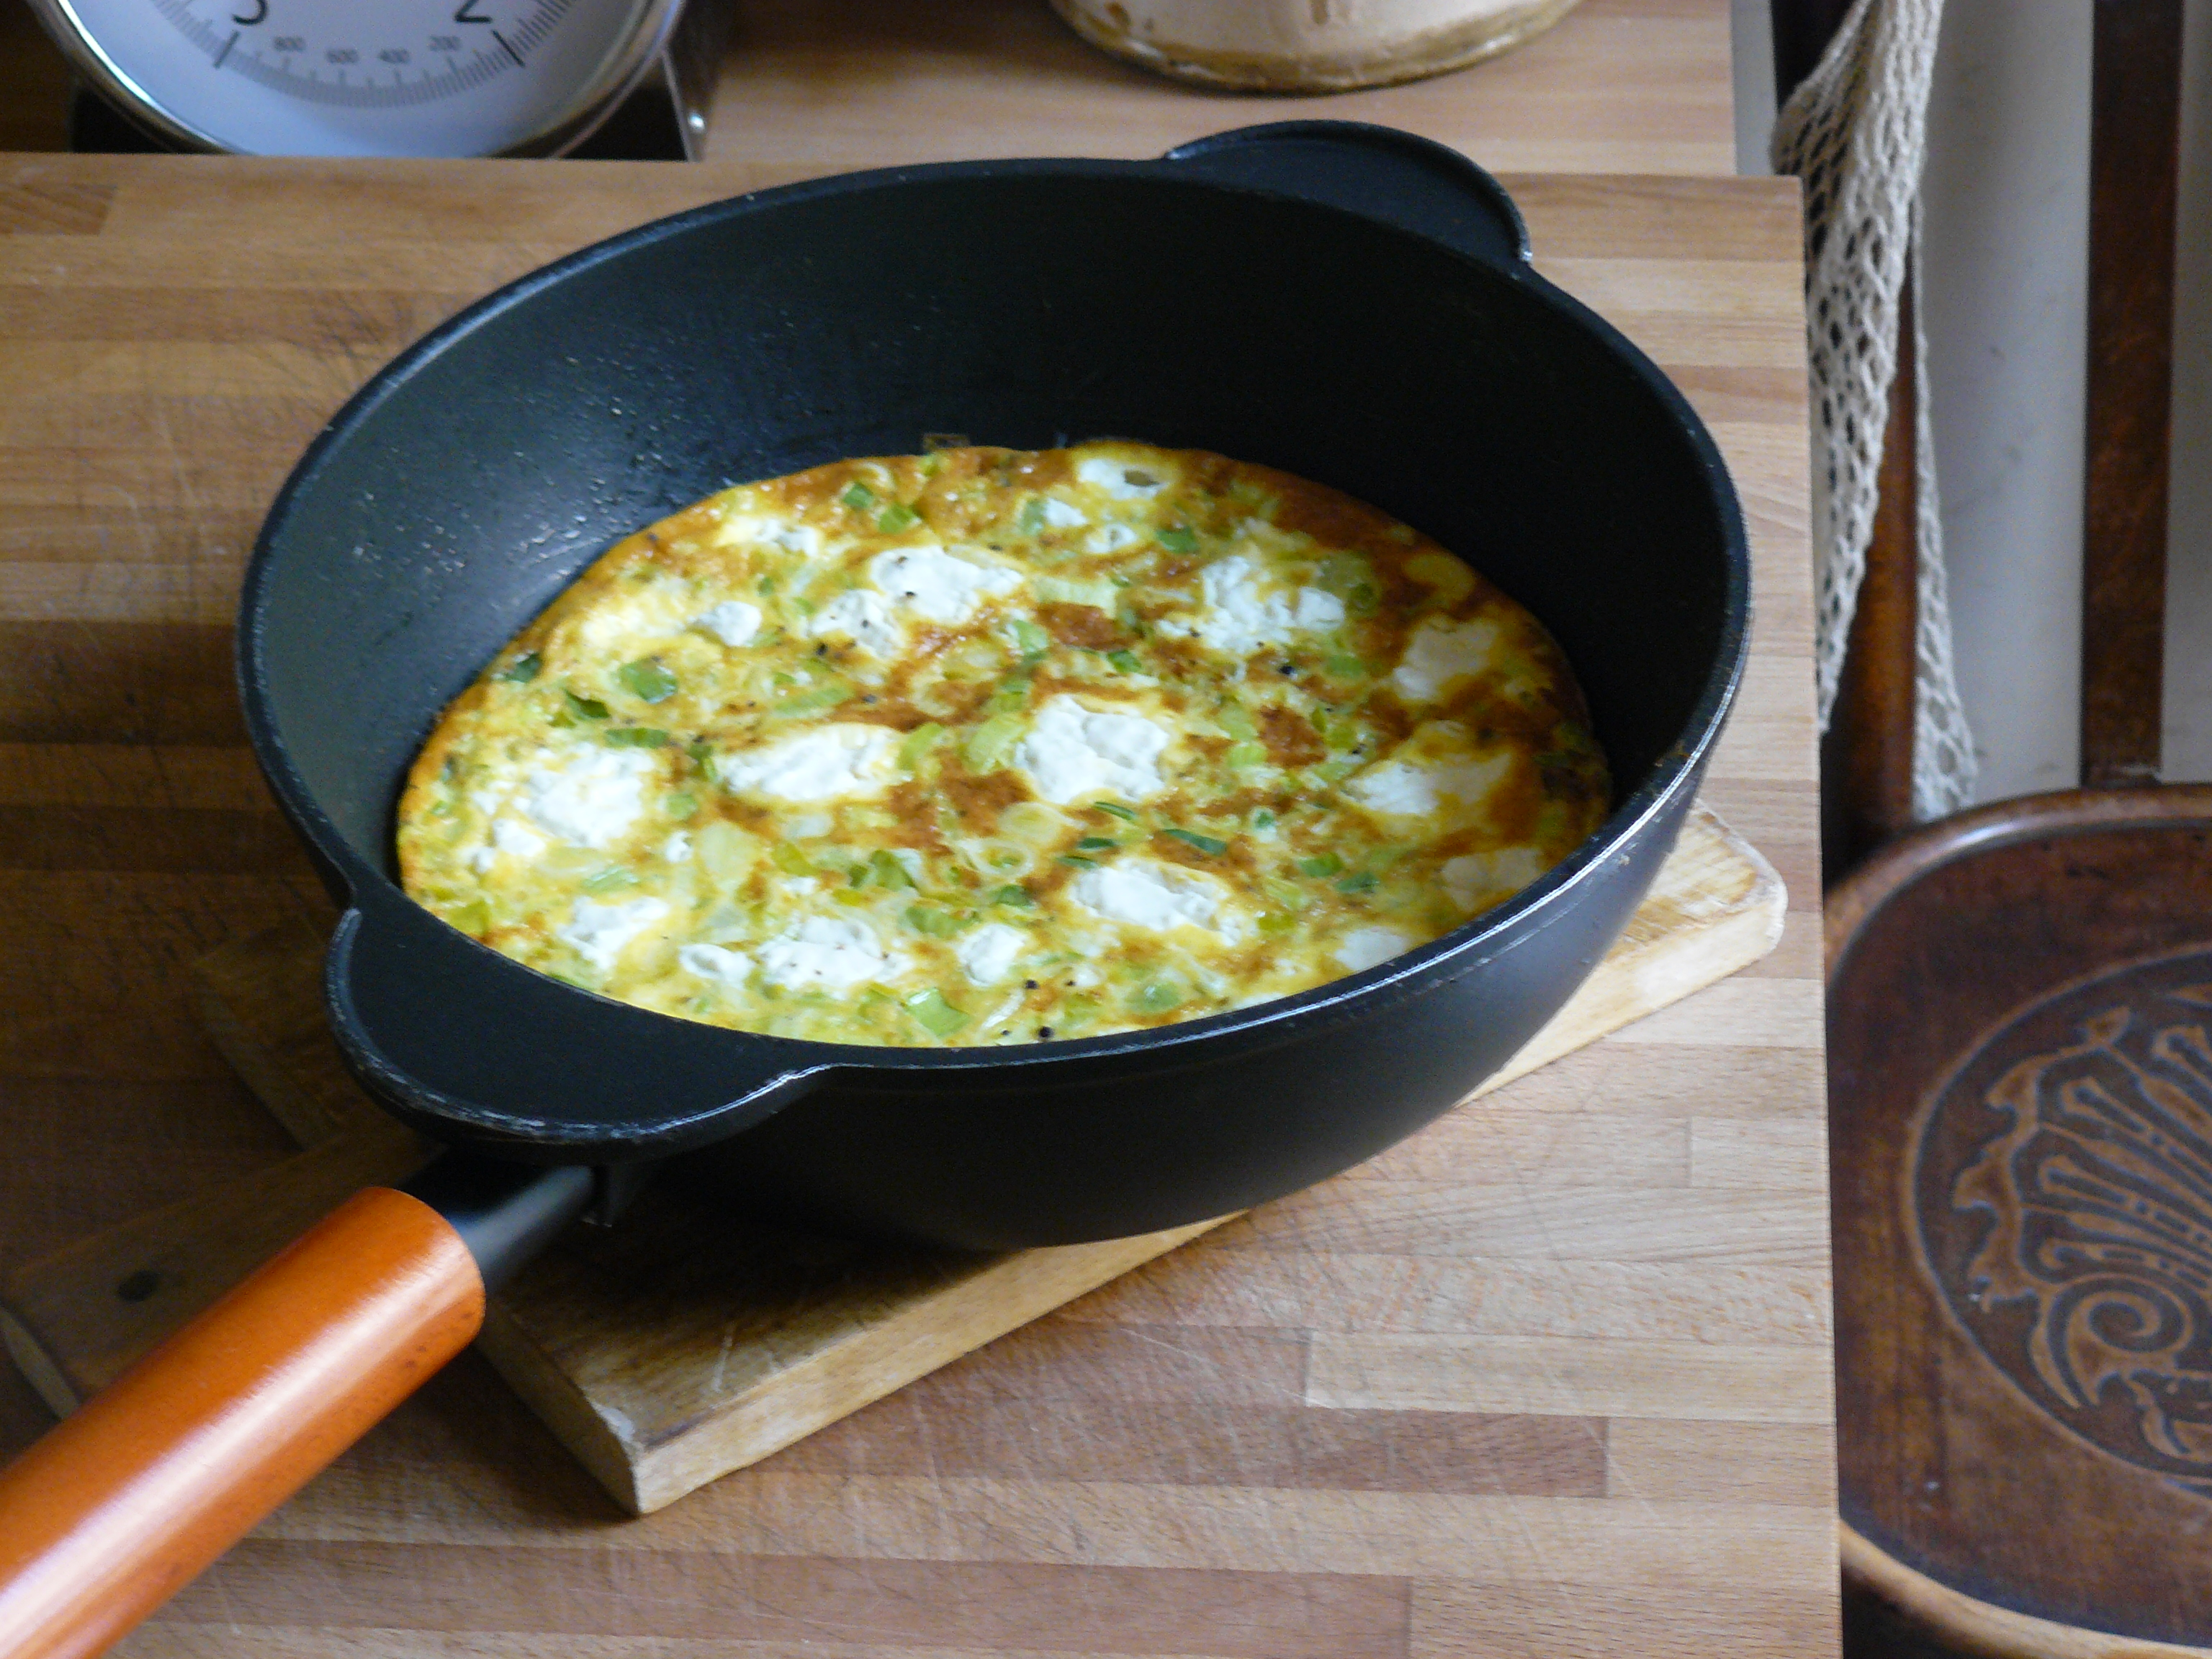 Then on Wednesday, yesterday, I made a leek and goats cheese frittata.